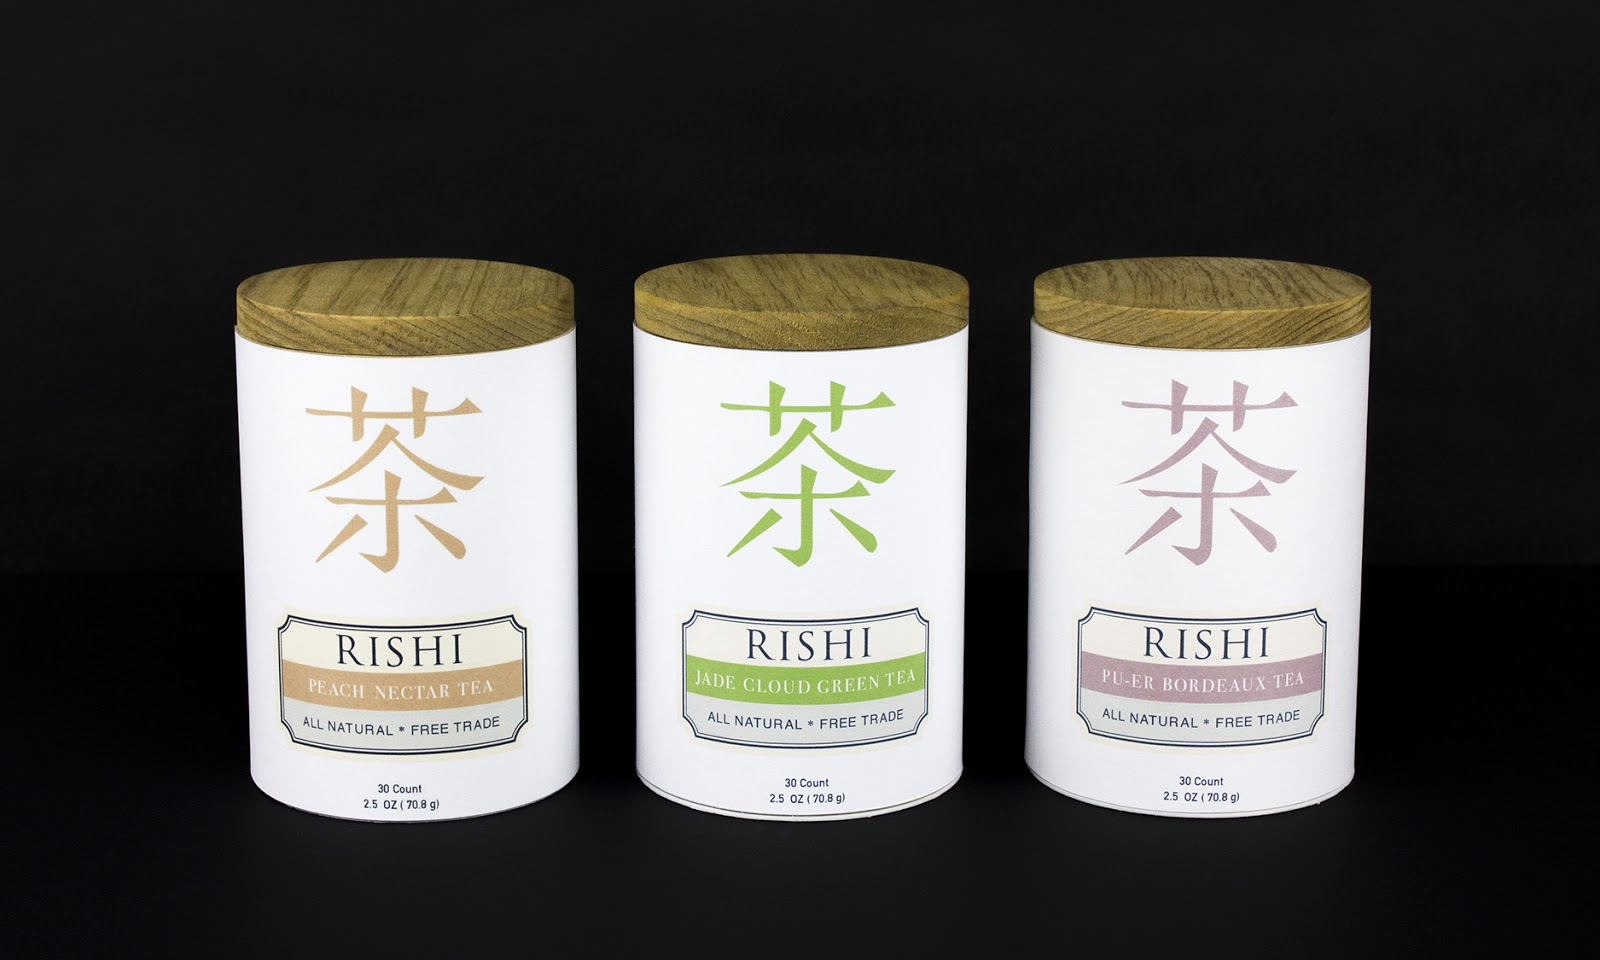 rishi sustainable tea containers  student project  on